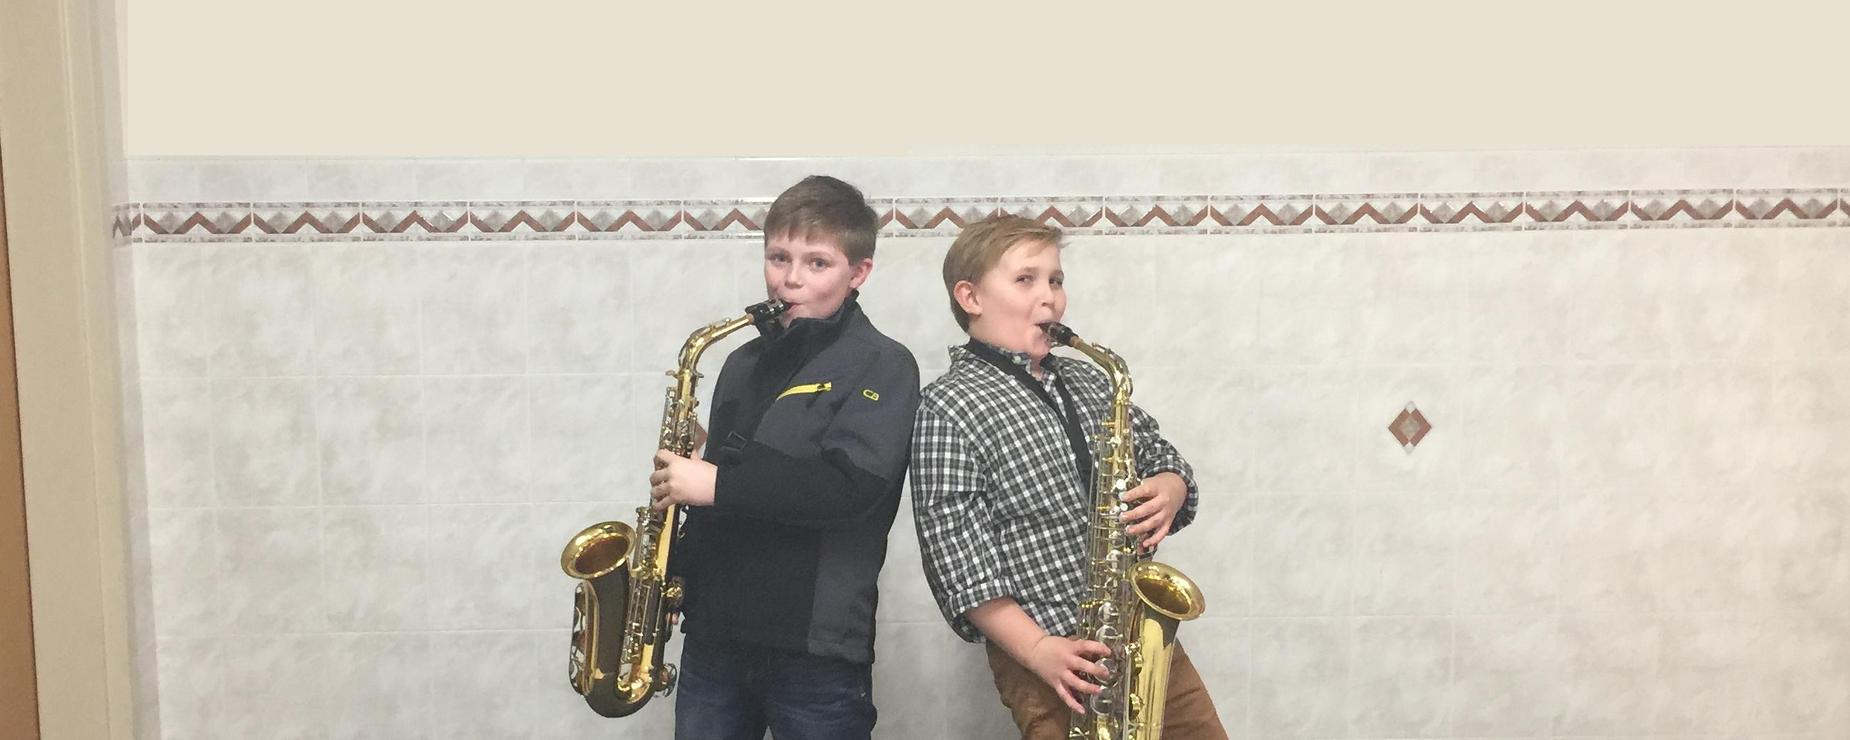 Two middle school boys stand back to back making funny faces while playing their saxophones